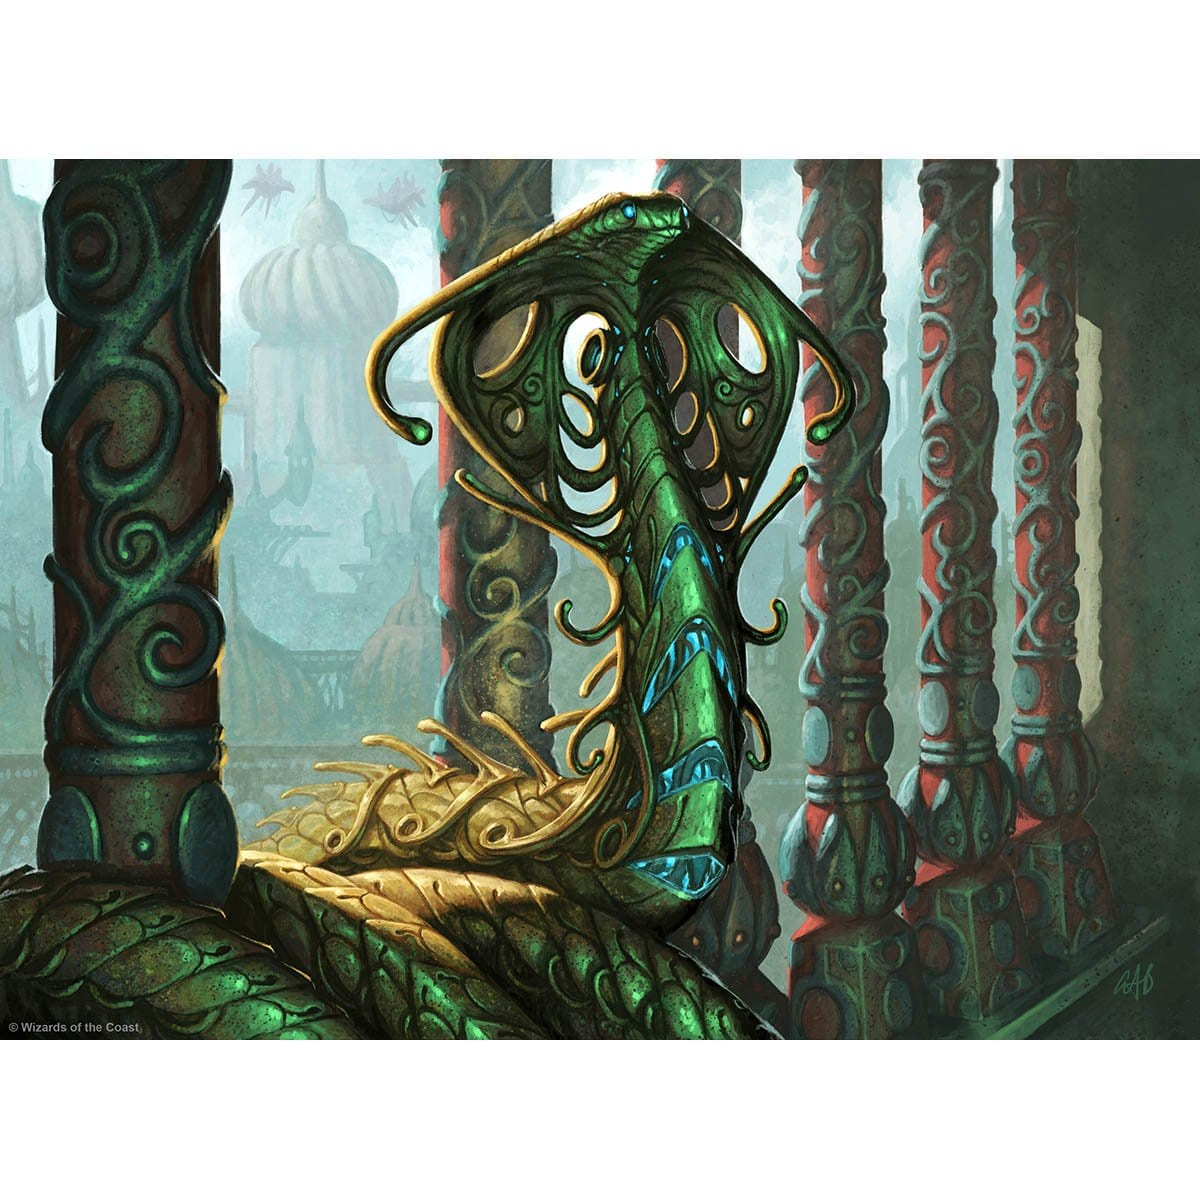 Narnam Cobra Print - Print - Original Magic Art - Accessories for Magic the Gathering and other card games